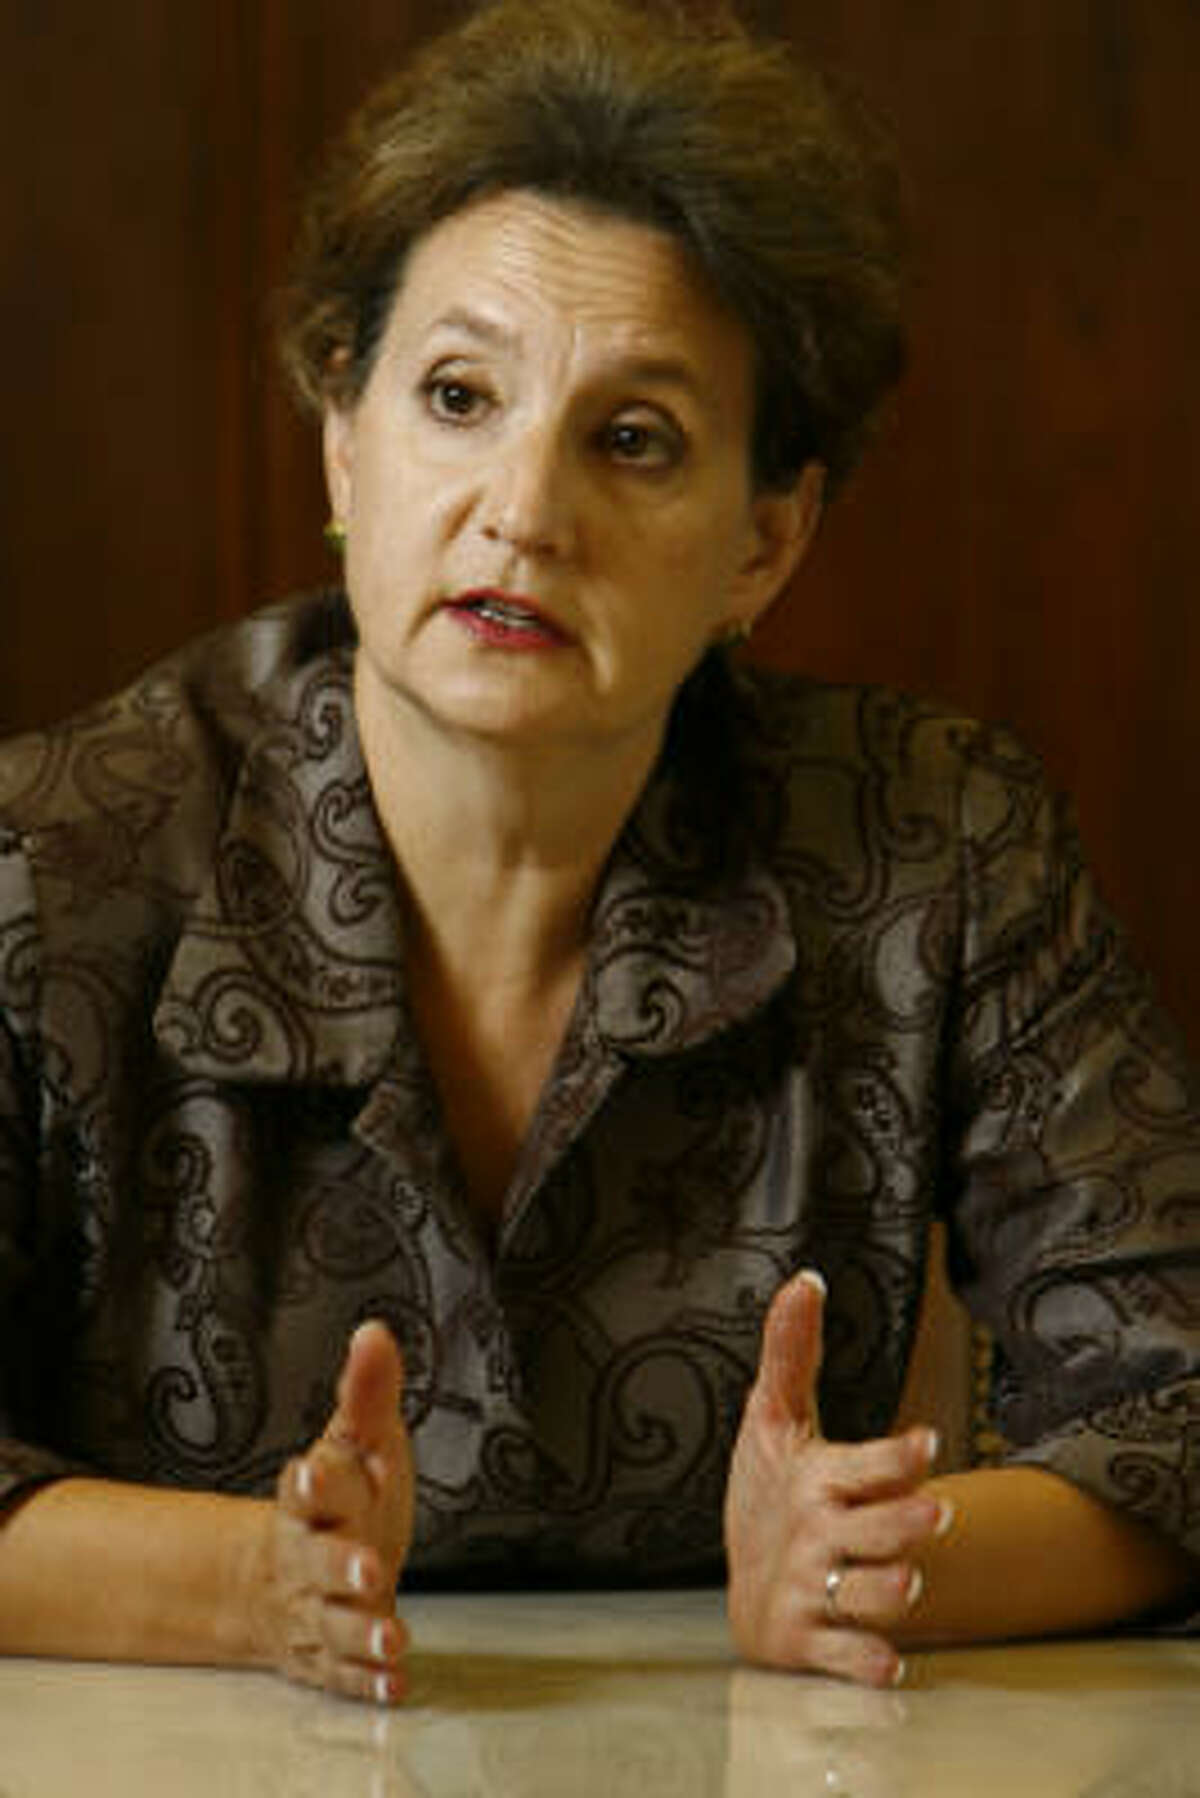 Barbara Ann Radnofsky is uncertain whether she will mount a 2008 bid for the Democratic nomination for the U.S. Senate from Texas.